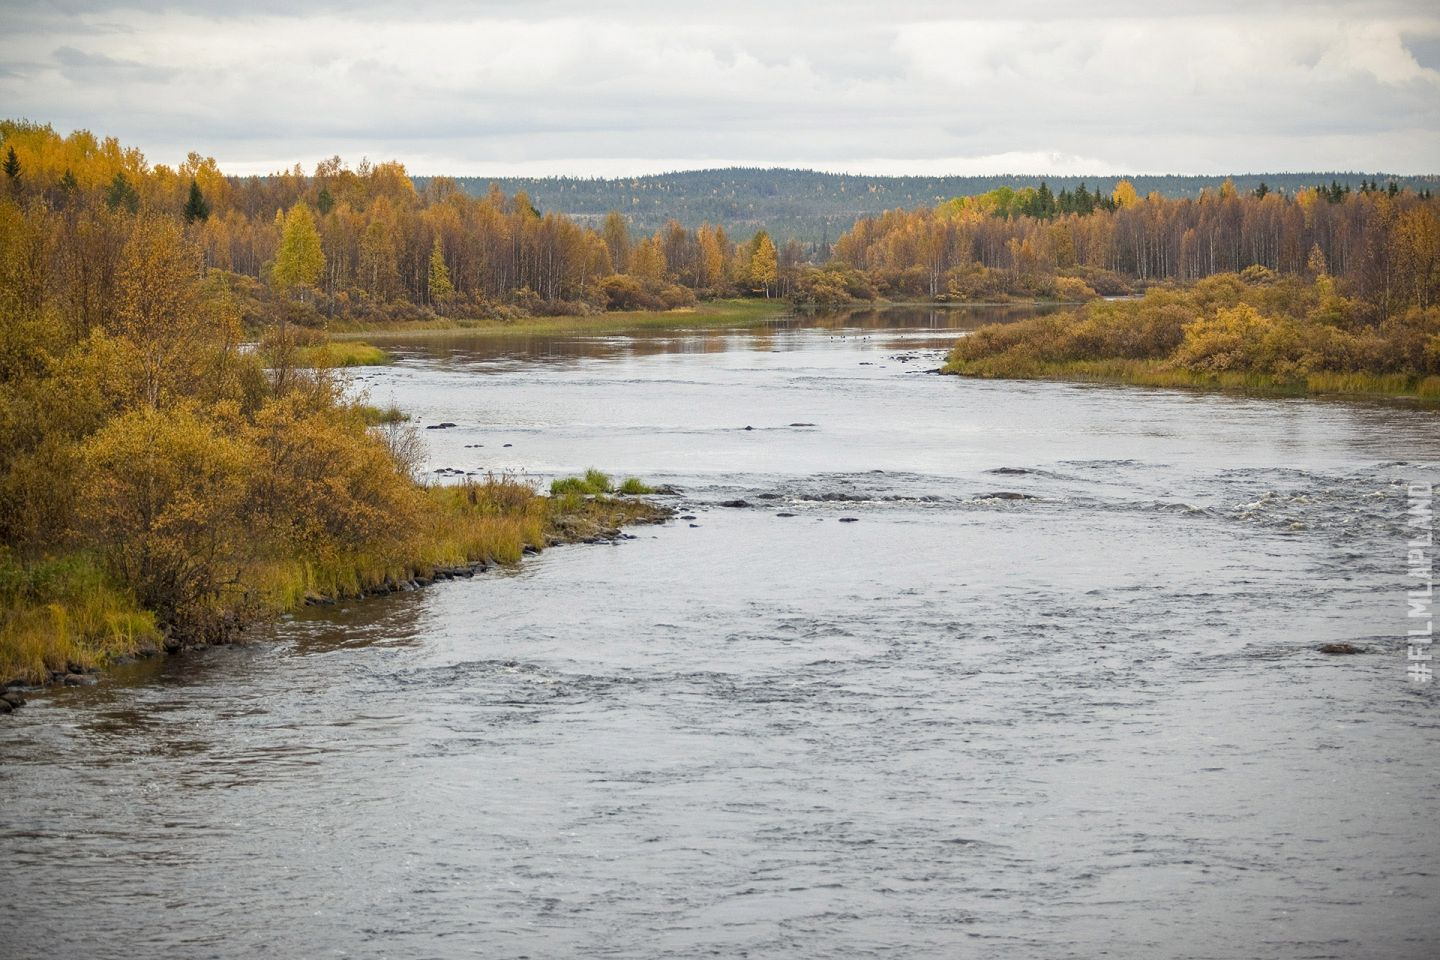 river and forest in Rovaniemi, Finland in autumn